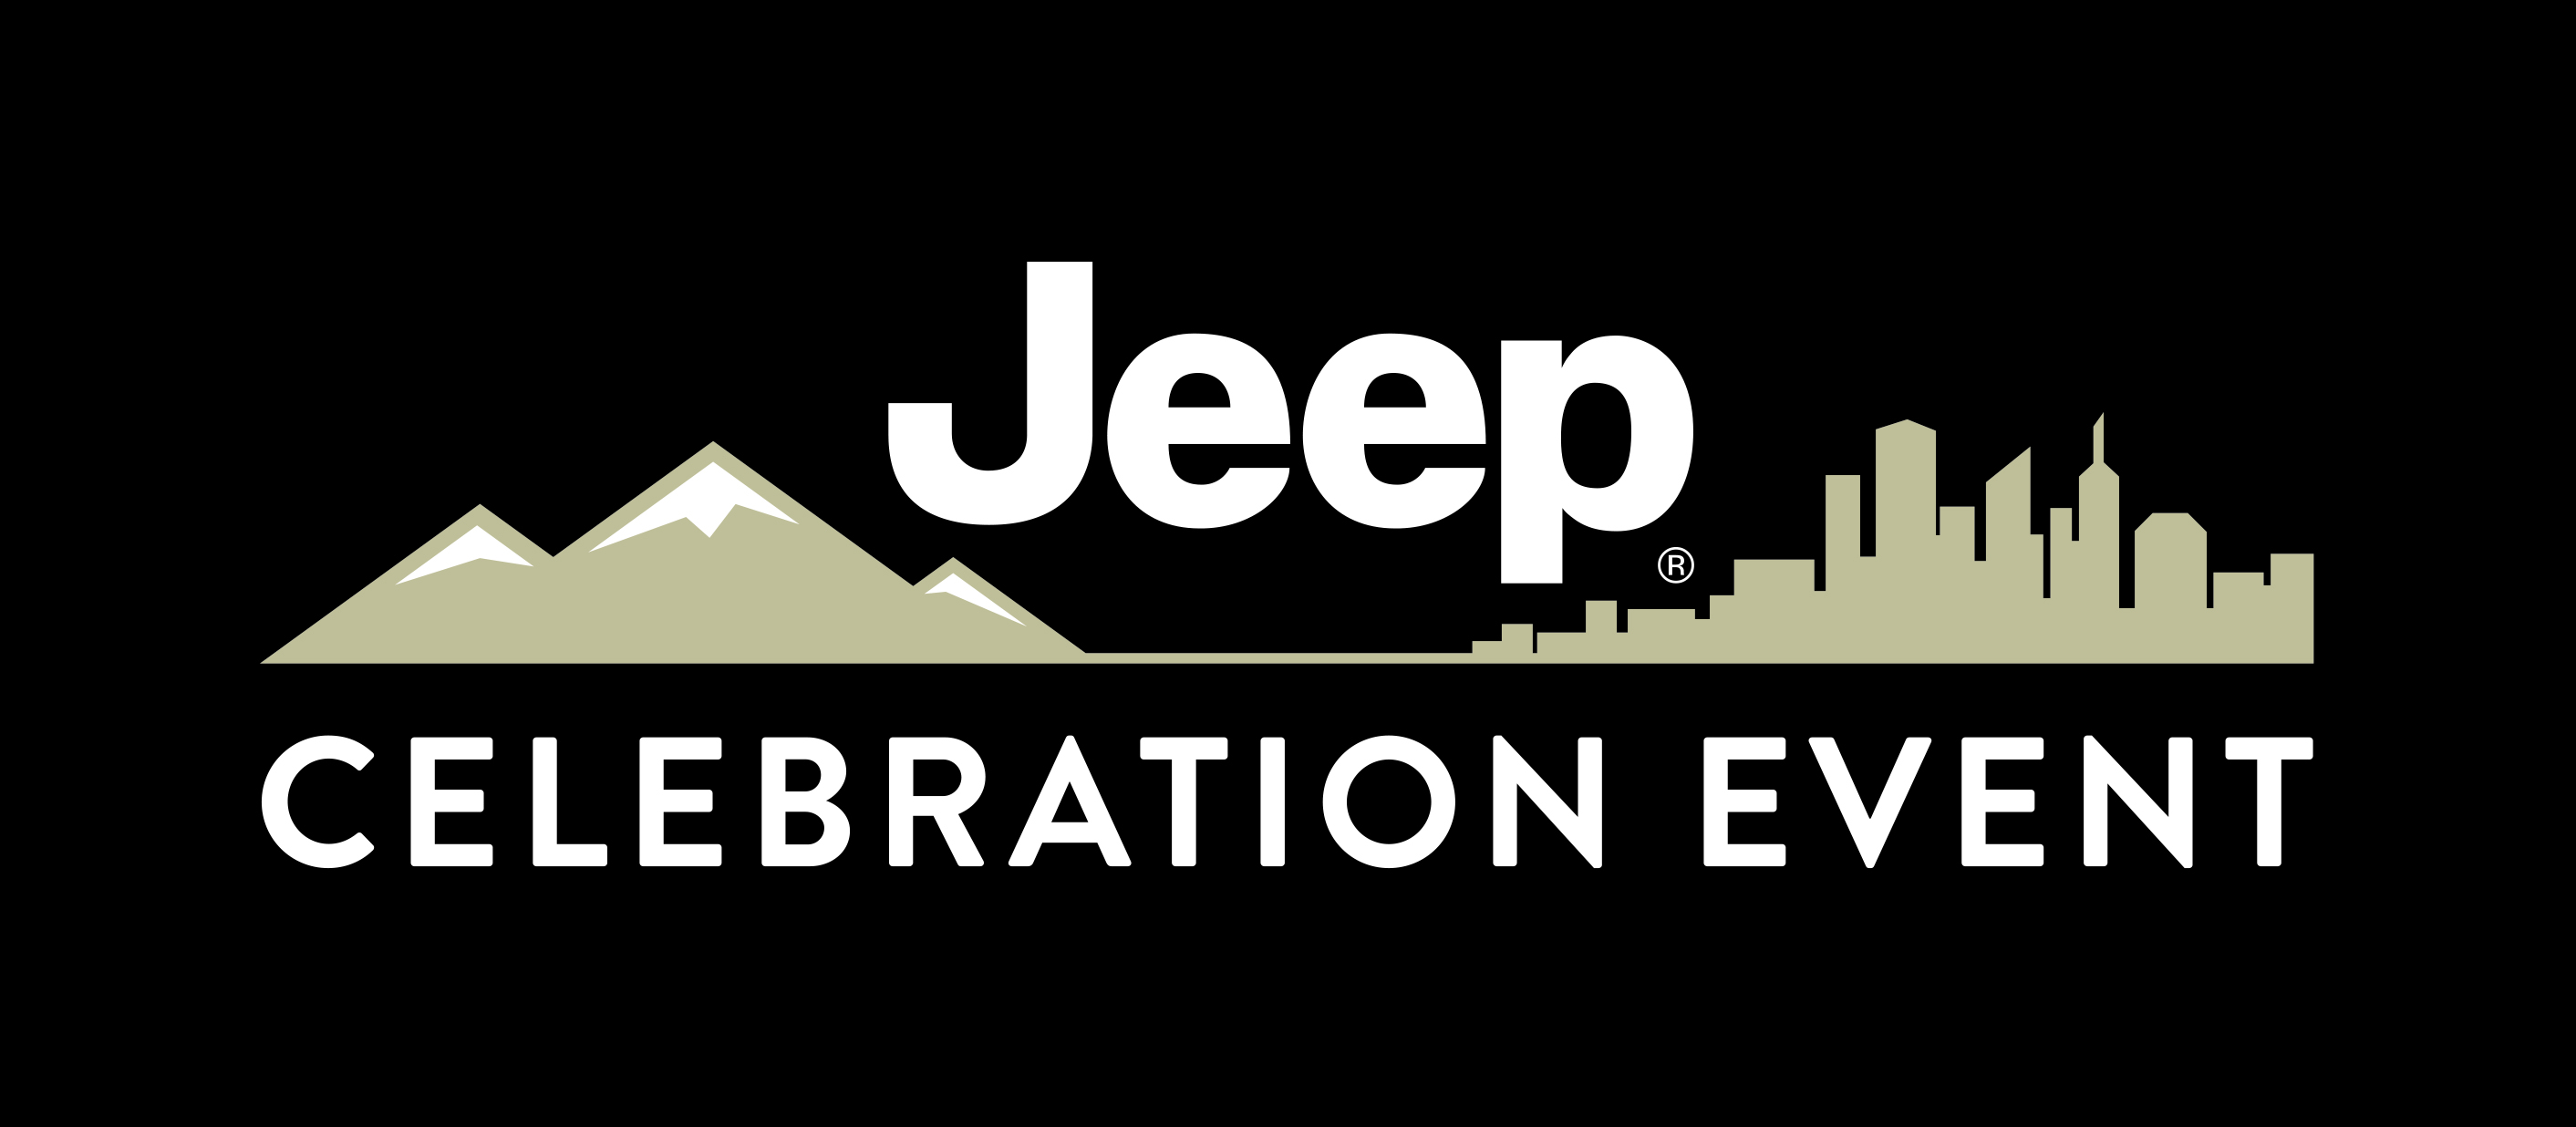 Jeep Celebration Event in Middlebury, VT